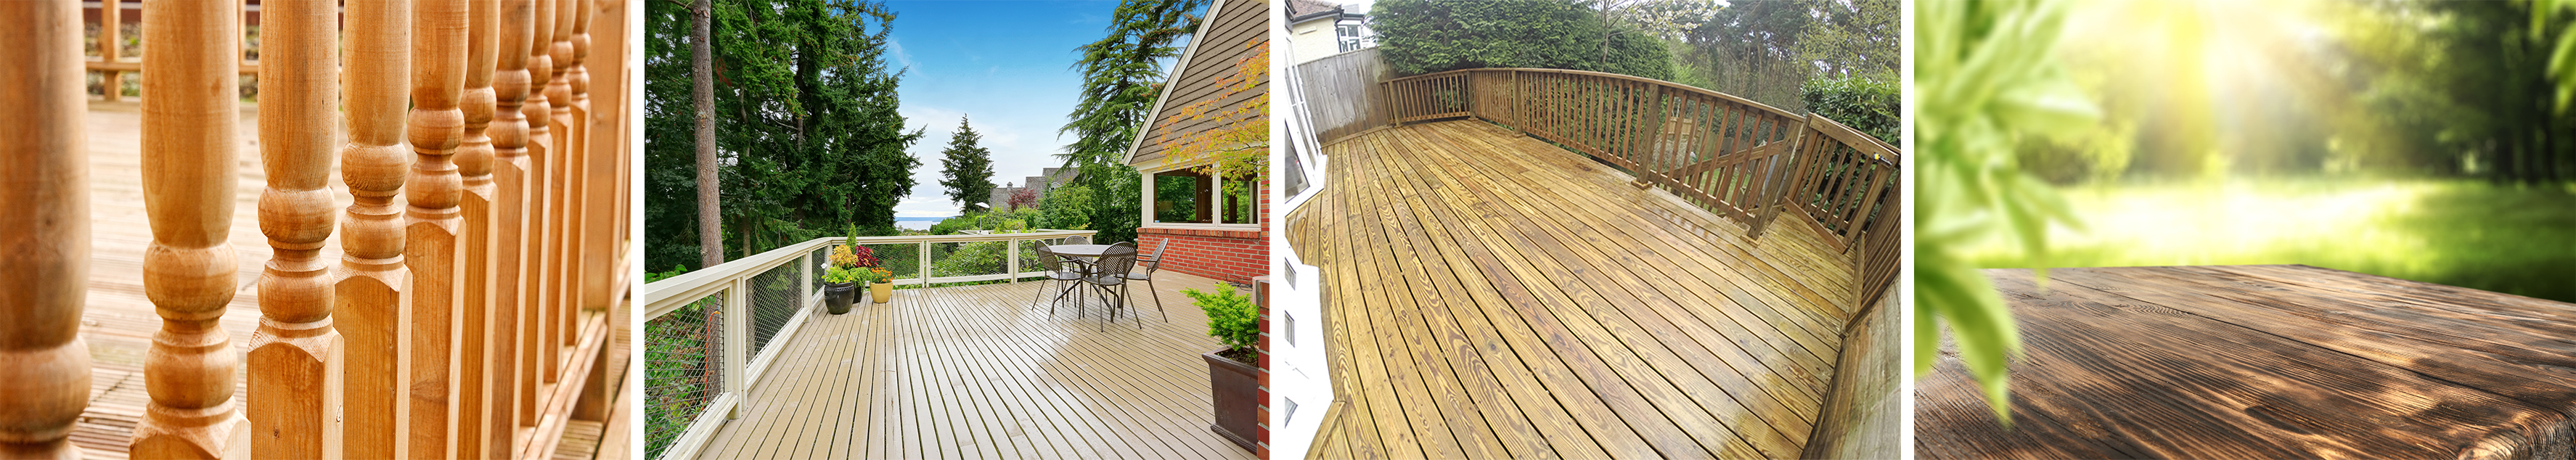 Decking Cleaning Services in Wareham, Dorset